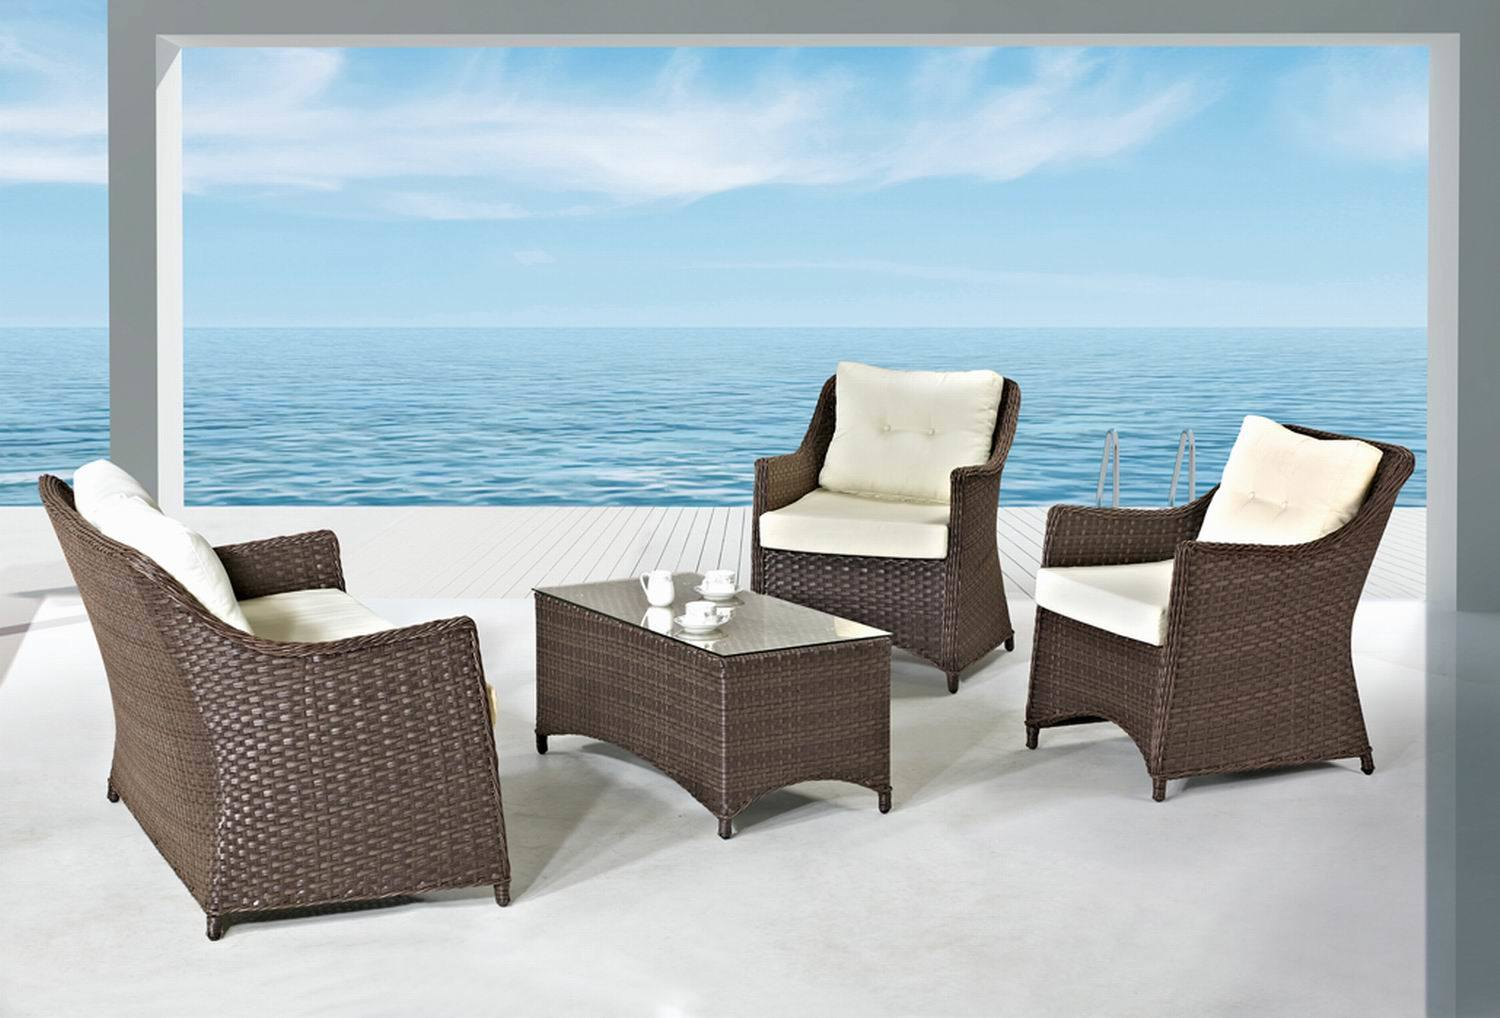 China Home Furniture Modern Outdoor Rattan/Wicker Sofa Within Outdoor Sofas And Chairs (View 14 of 15)